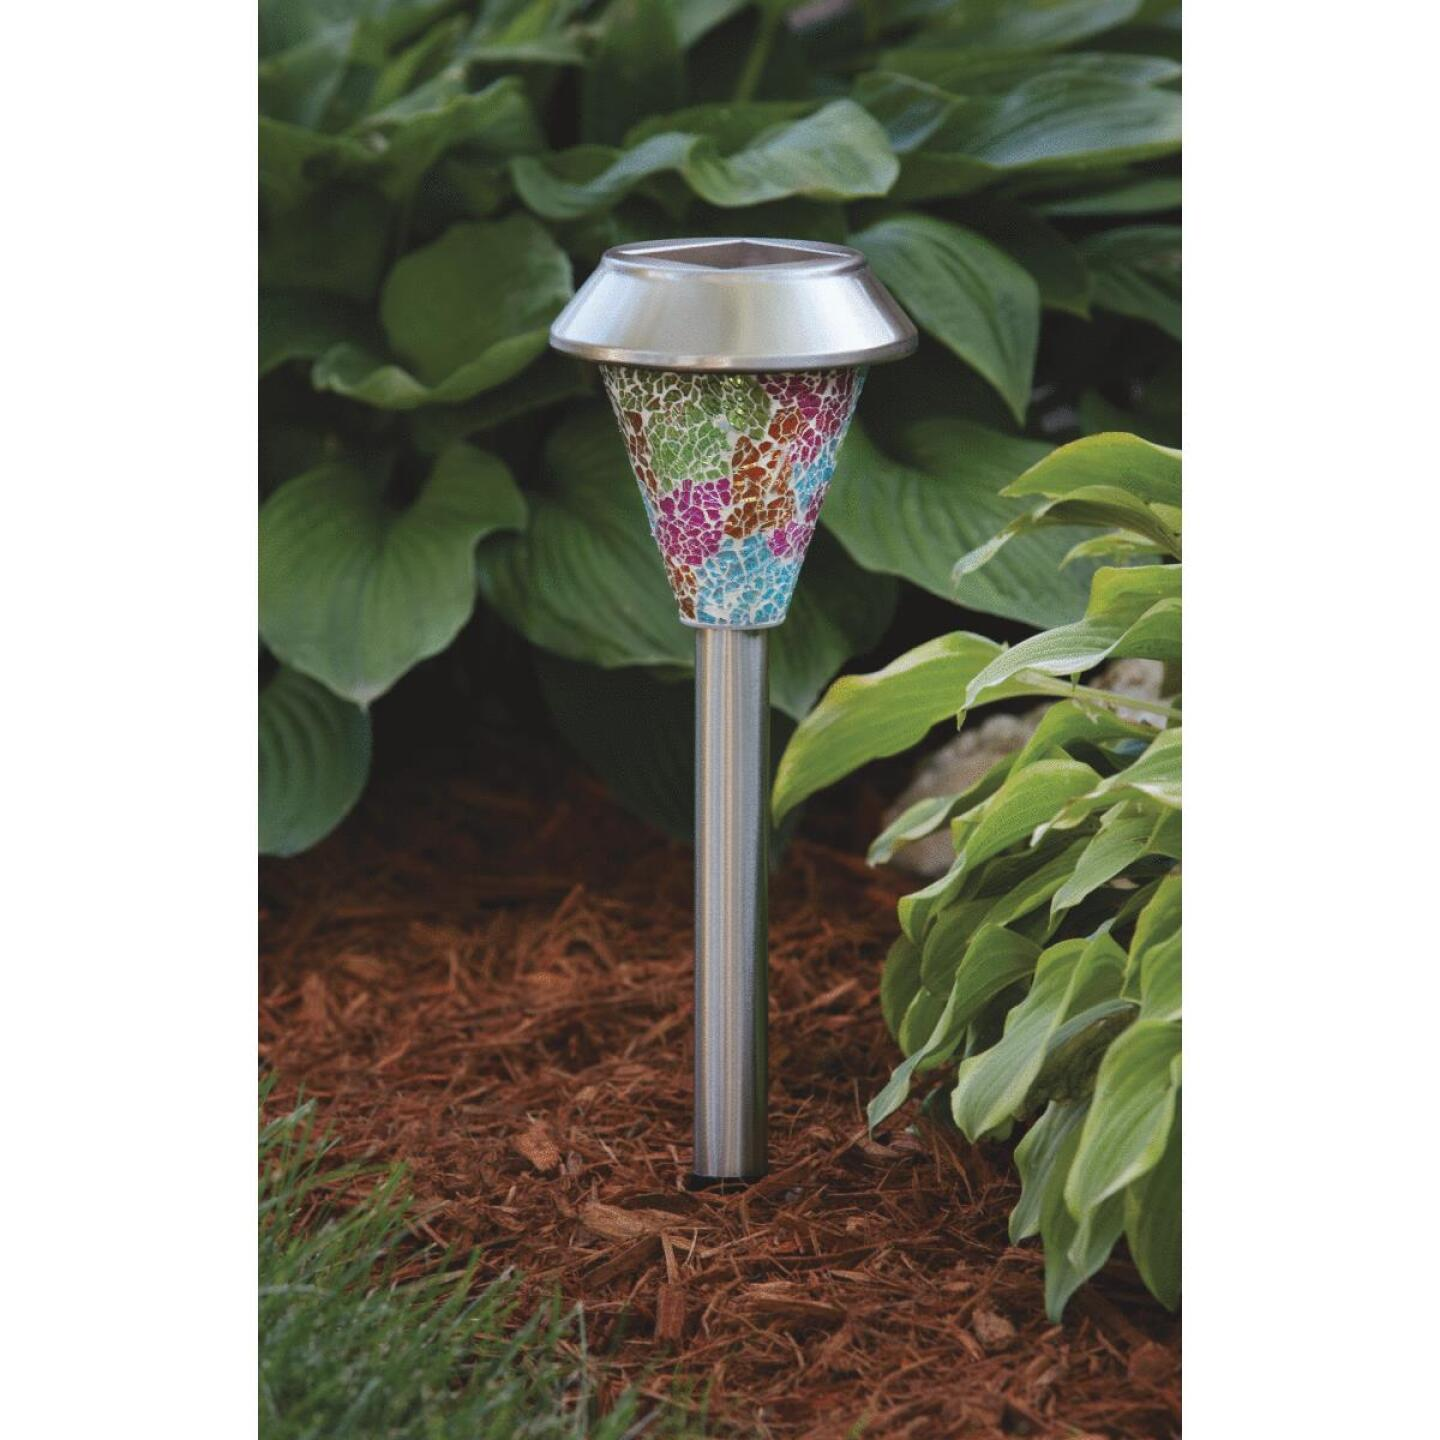 Outdoor Expressions Multi-Color Mosaic 2.10 Lumens Stainless Steel Solar Path Light Image 2